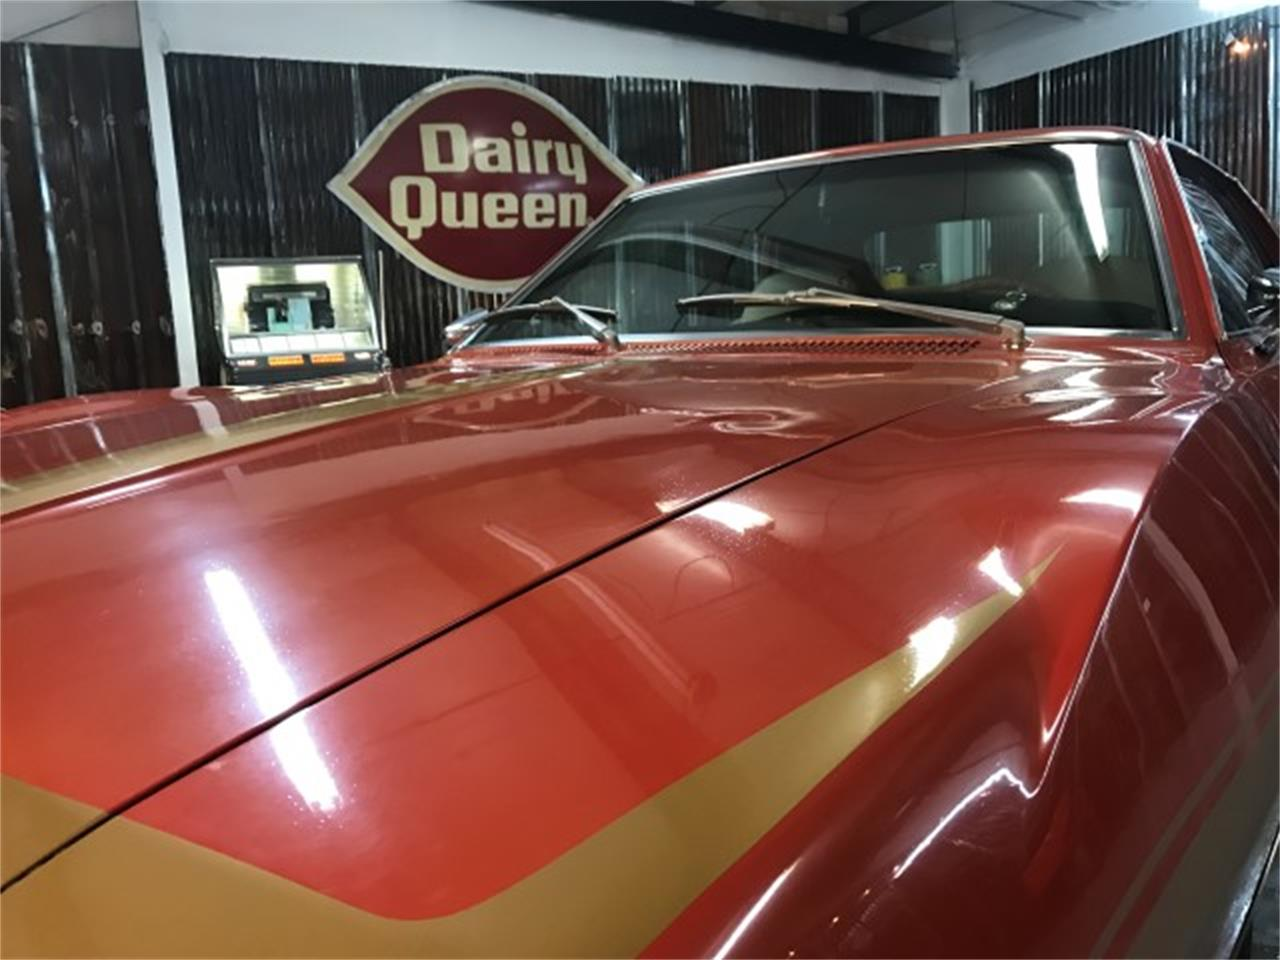 Large Picture of 1972 Javelin located in SHERWOOD Oregon - $15,500.00 - ME29